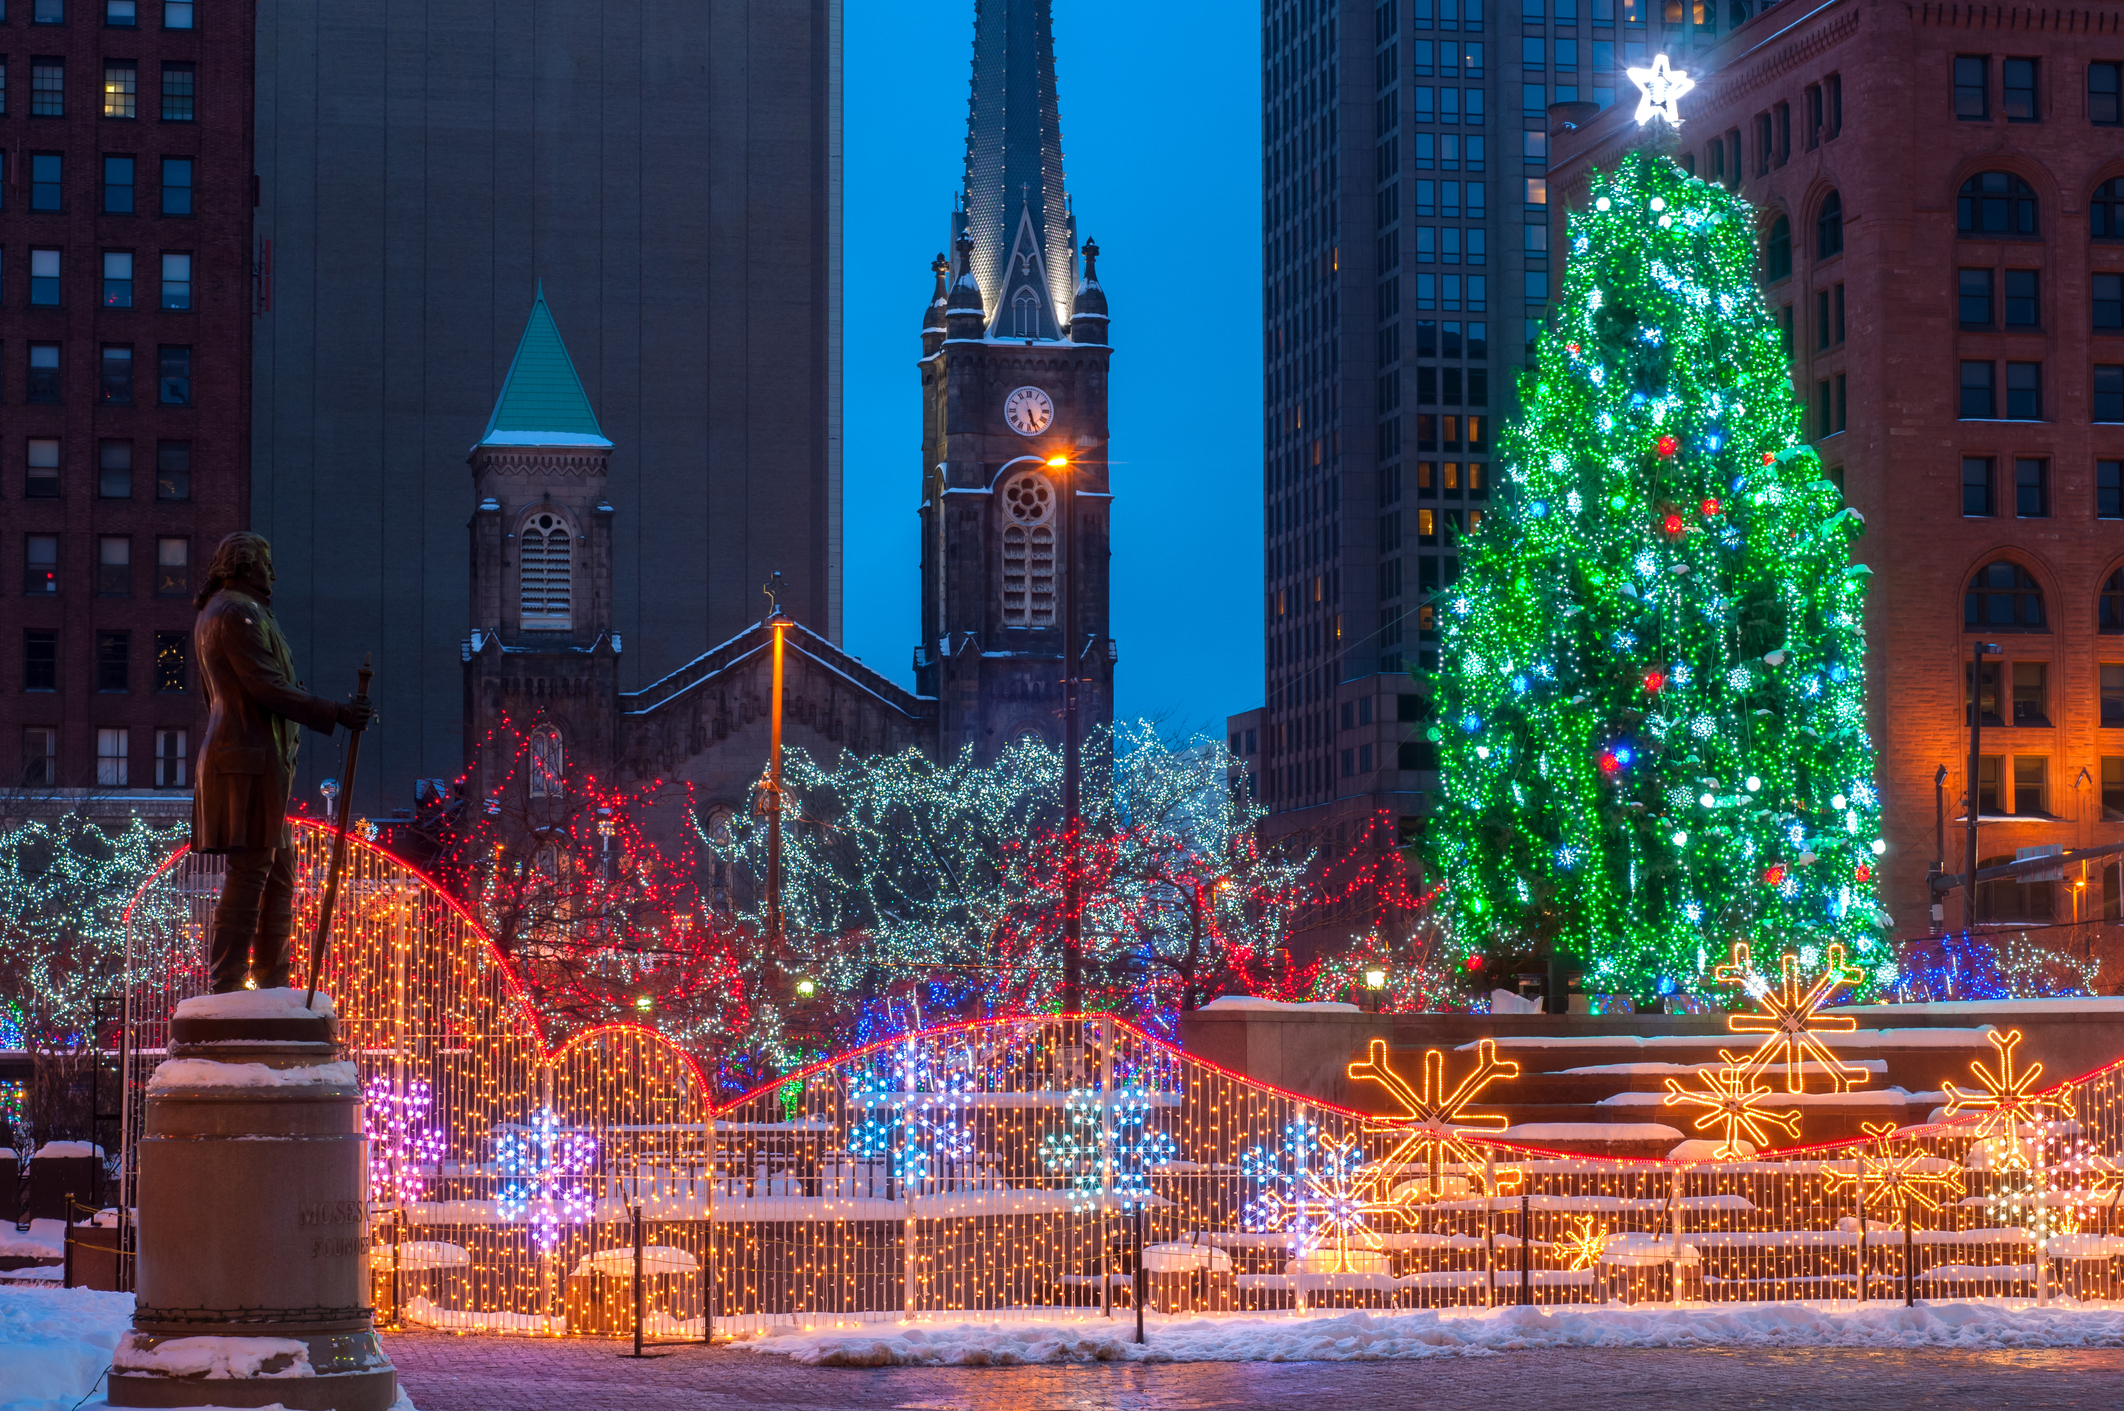 A constellation of holiday lights aglow in a big city square.